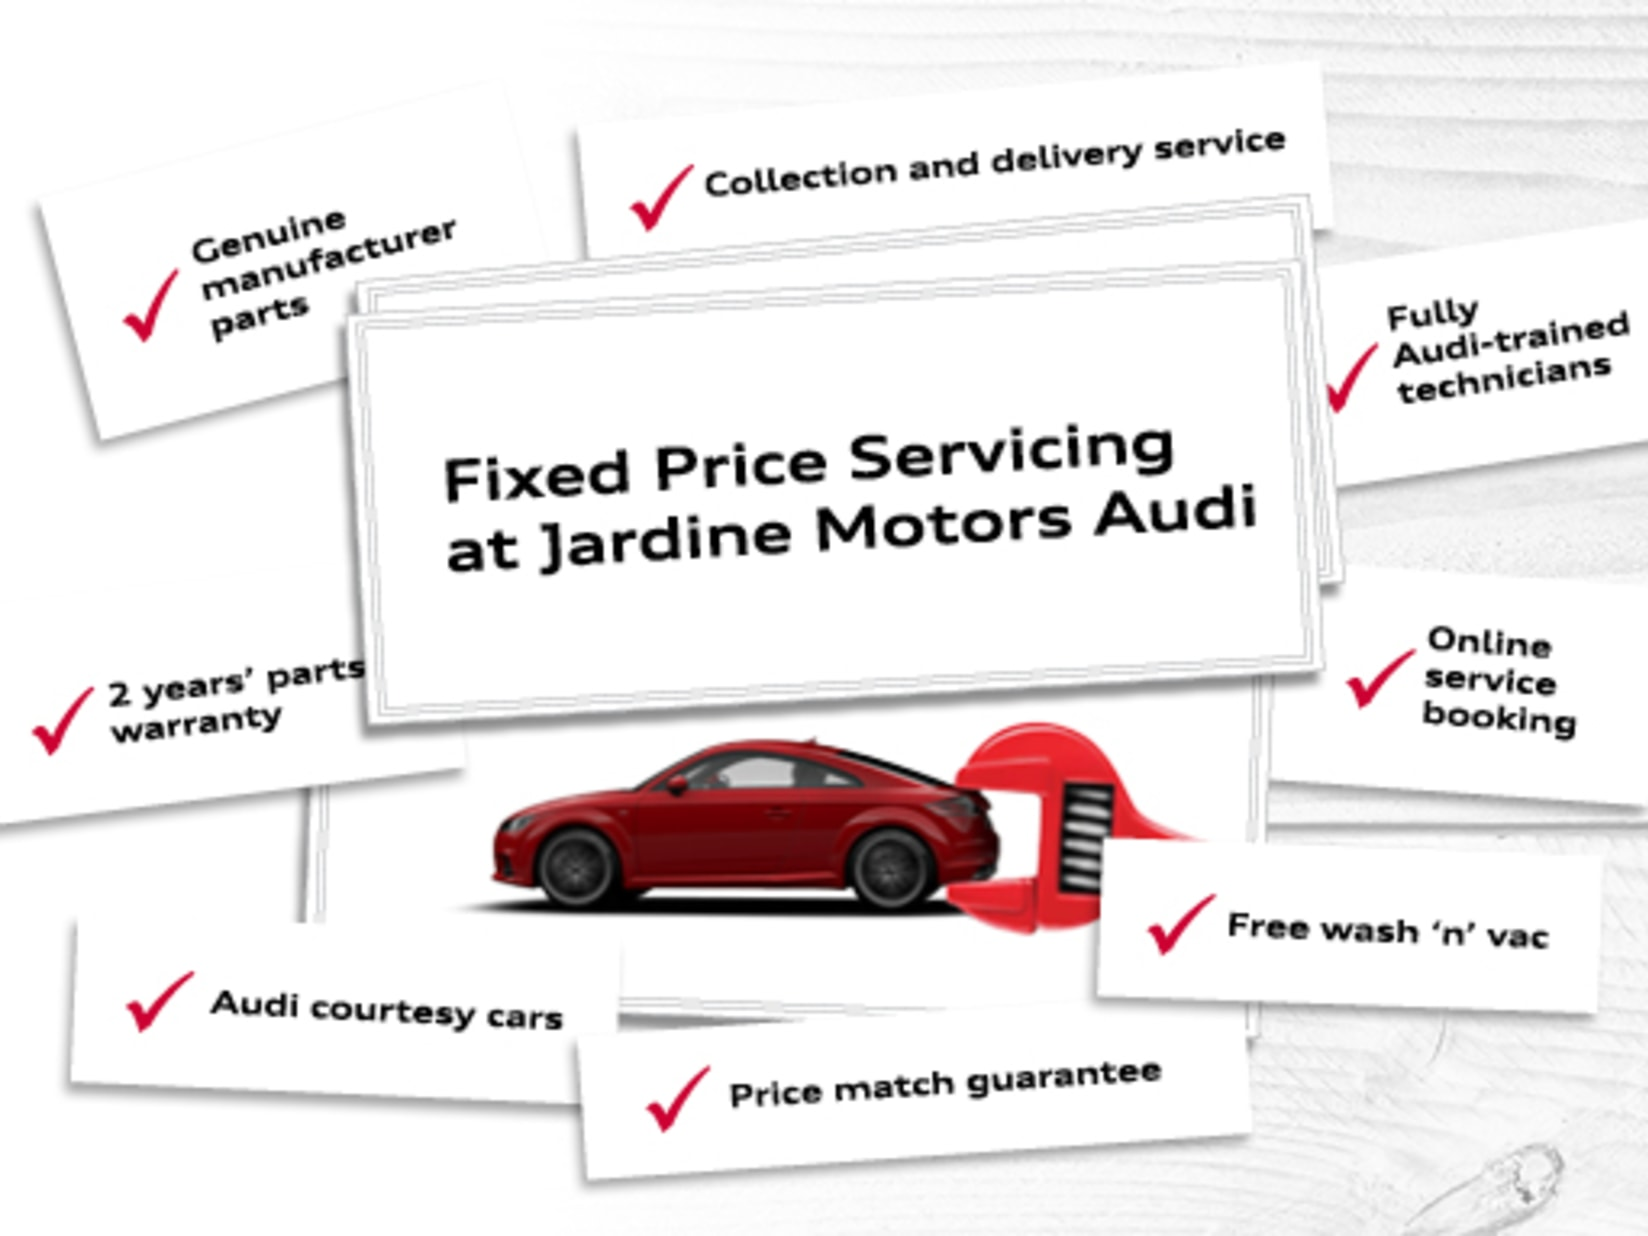 Audi A4 Oil Change Cost >> Audi Fixed Price Servicing Across The Uk Jardine Motors Audi